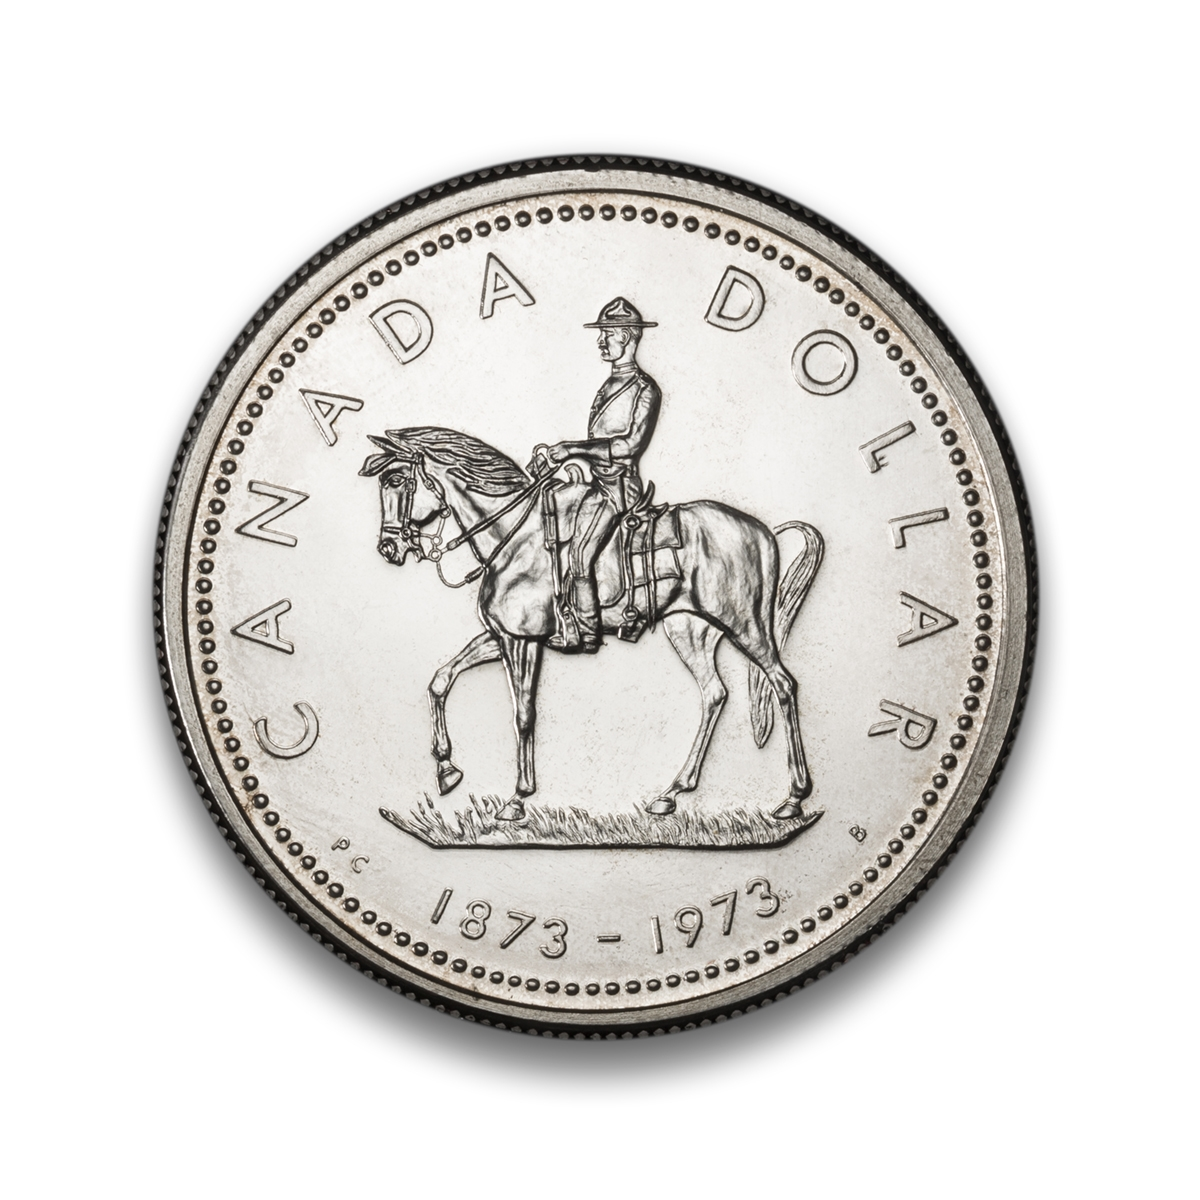 The Royal Canadian Mint (French: Monnaie royale canadienne) is a Crown corporation, operating under the Royal Canadian Mint narmaformcap.tk shares of the Mint are held in trust for the Crown in right of Canada.. The Mint produces all of Canada's circulation coins, and manufactures circulation coins on behalf of other nations. The Mint also designs and manufactures: precious and base metal collector.